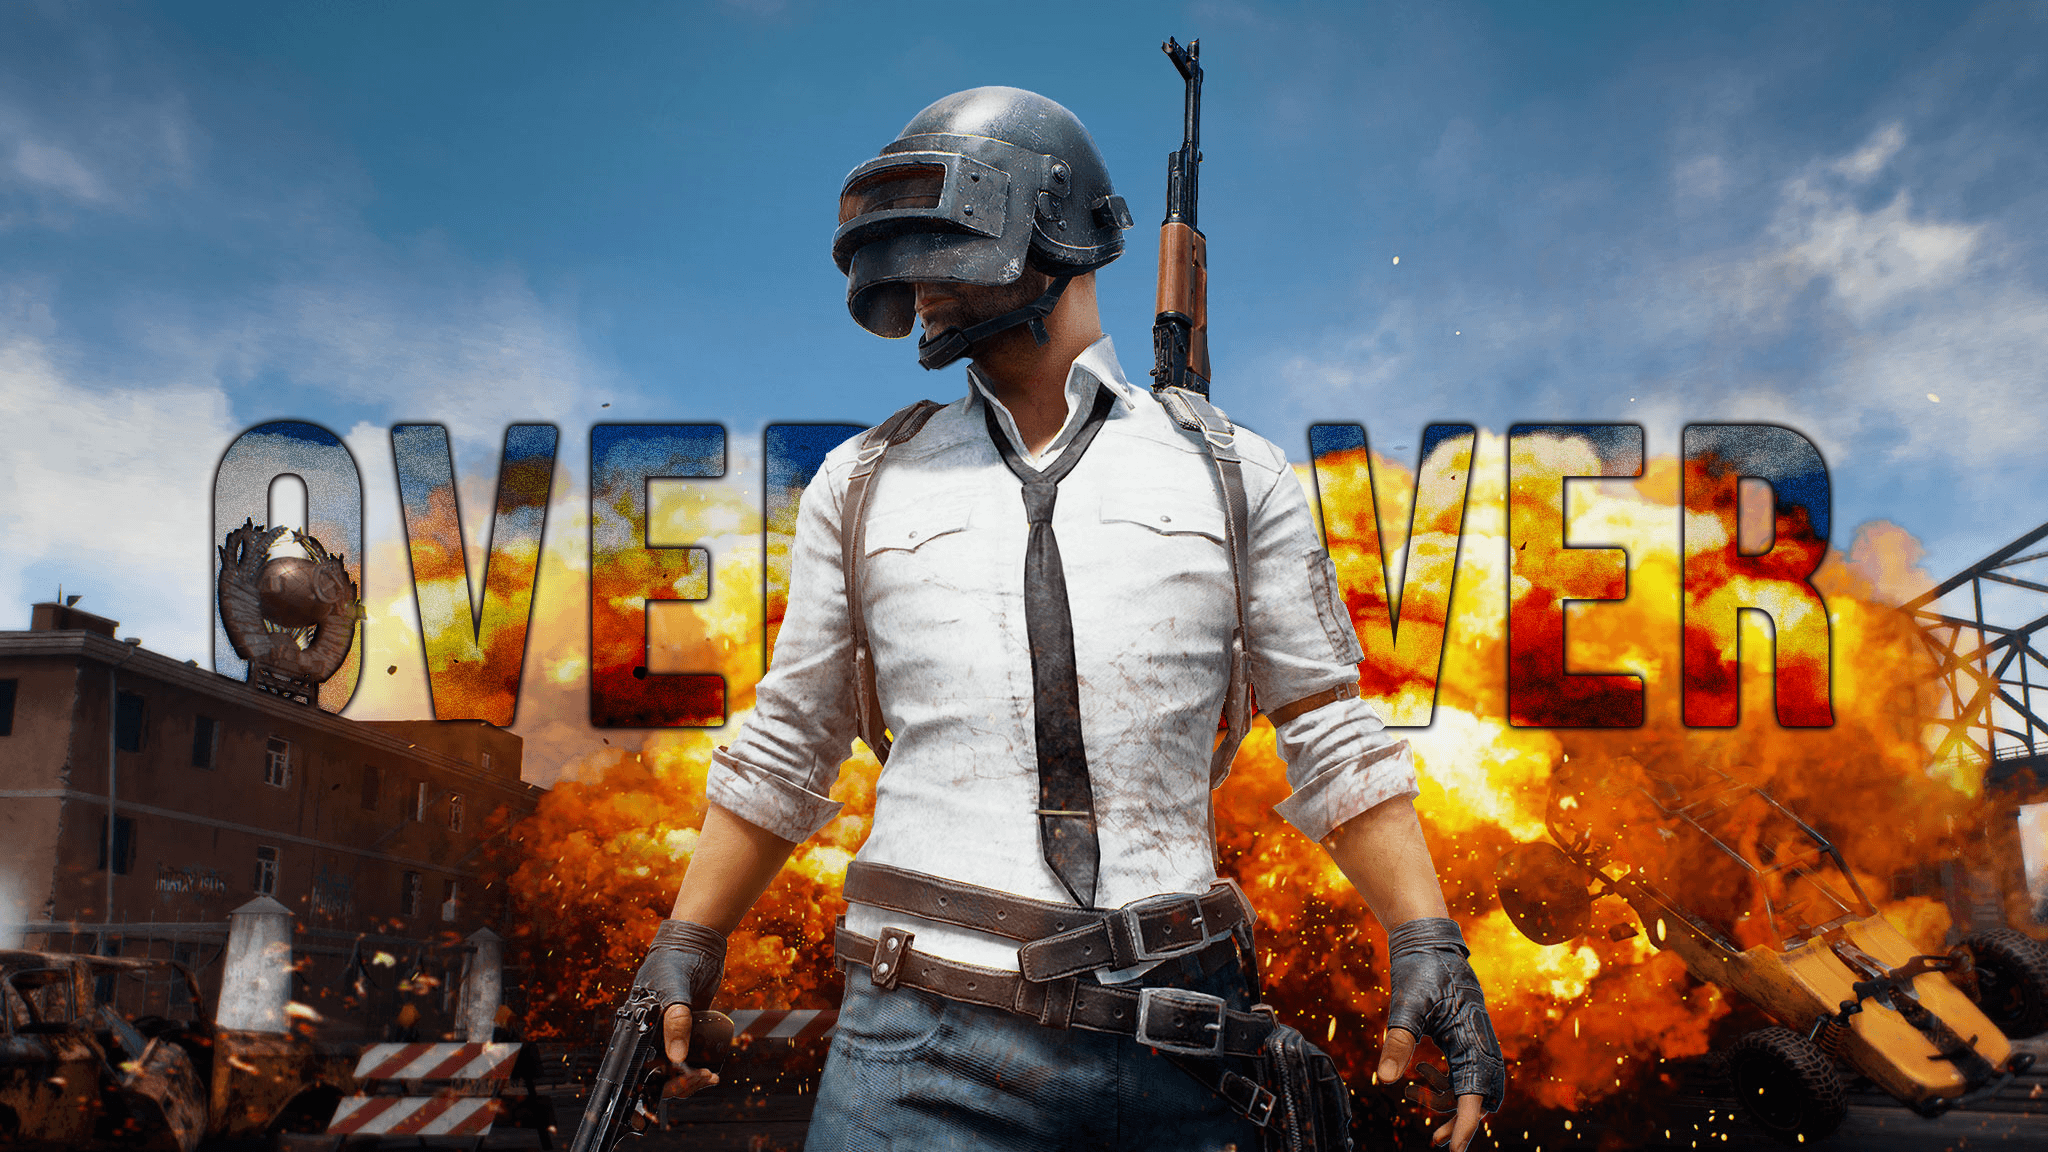 4k Ultra Hd Playerunknown S Battlegrounds Wallpapers Pubg Wallpapers Hd Wallpapers Download Wallpaper P Gaming Wallpapers Mobile Generator Hd Wallpapers For Pc